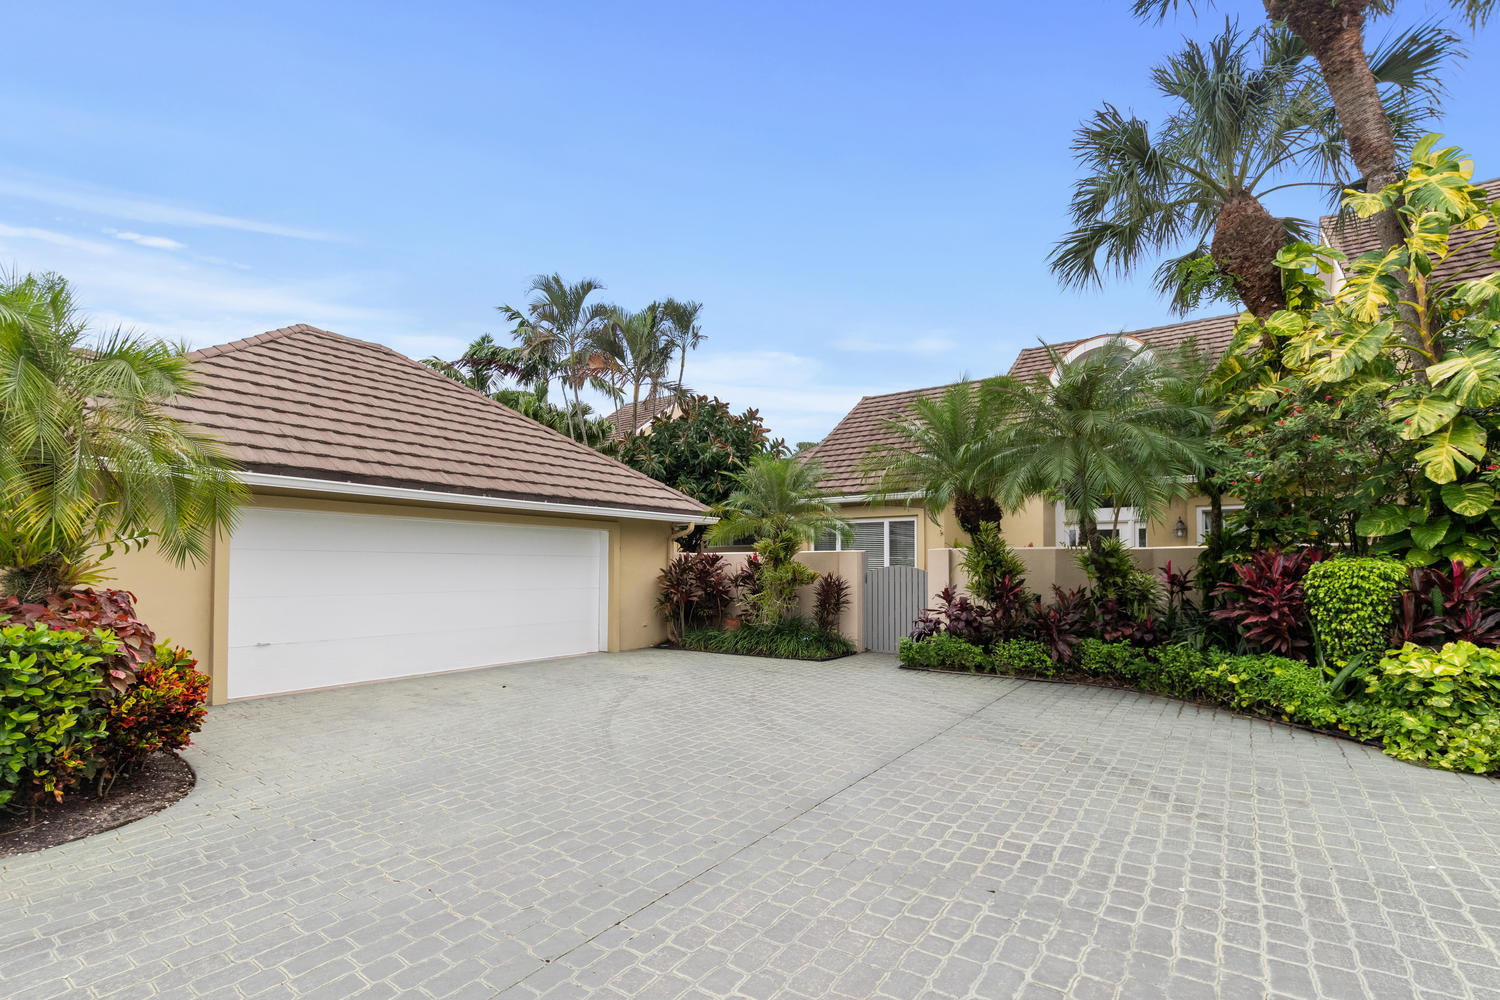 2600 Muirfield Court, Wellington, Florida 33414, 3 Bedrooms Bedrooms, ,3 BathroomsBathrooms,Townhouse,For Sale,Palm Beach Polo & CC,Muirfield,RX-10579032